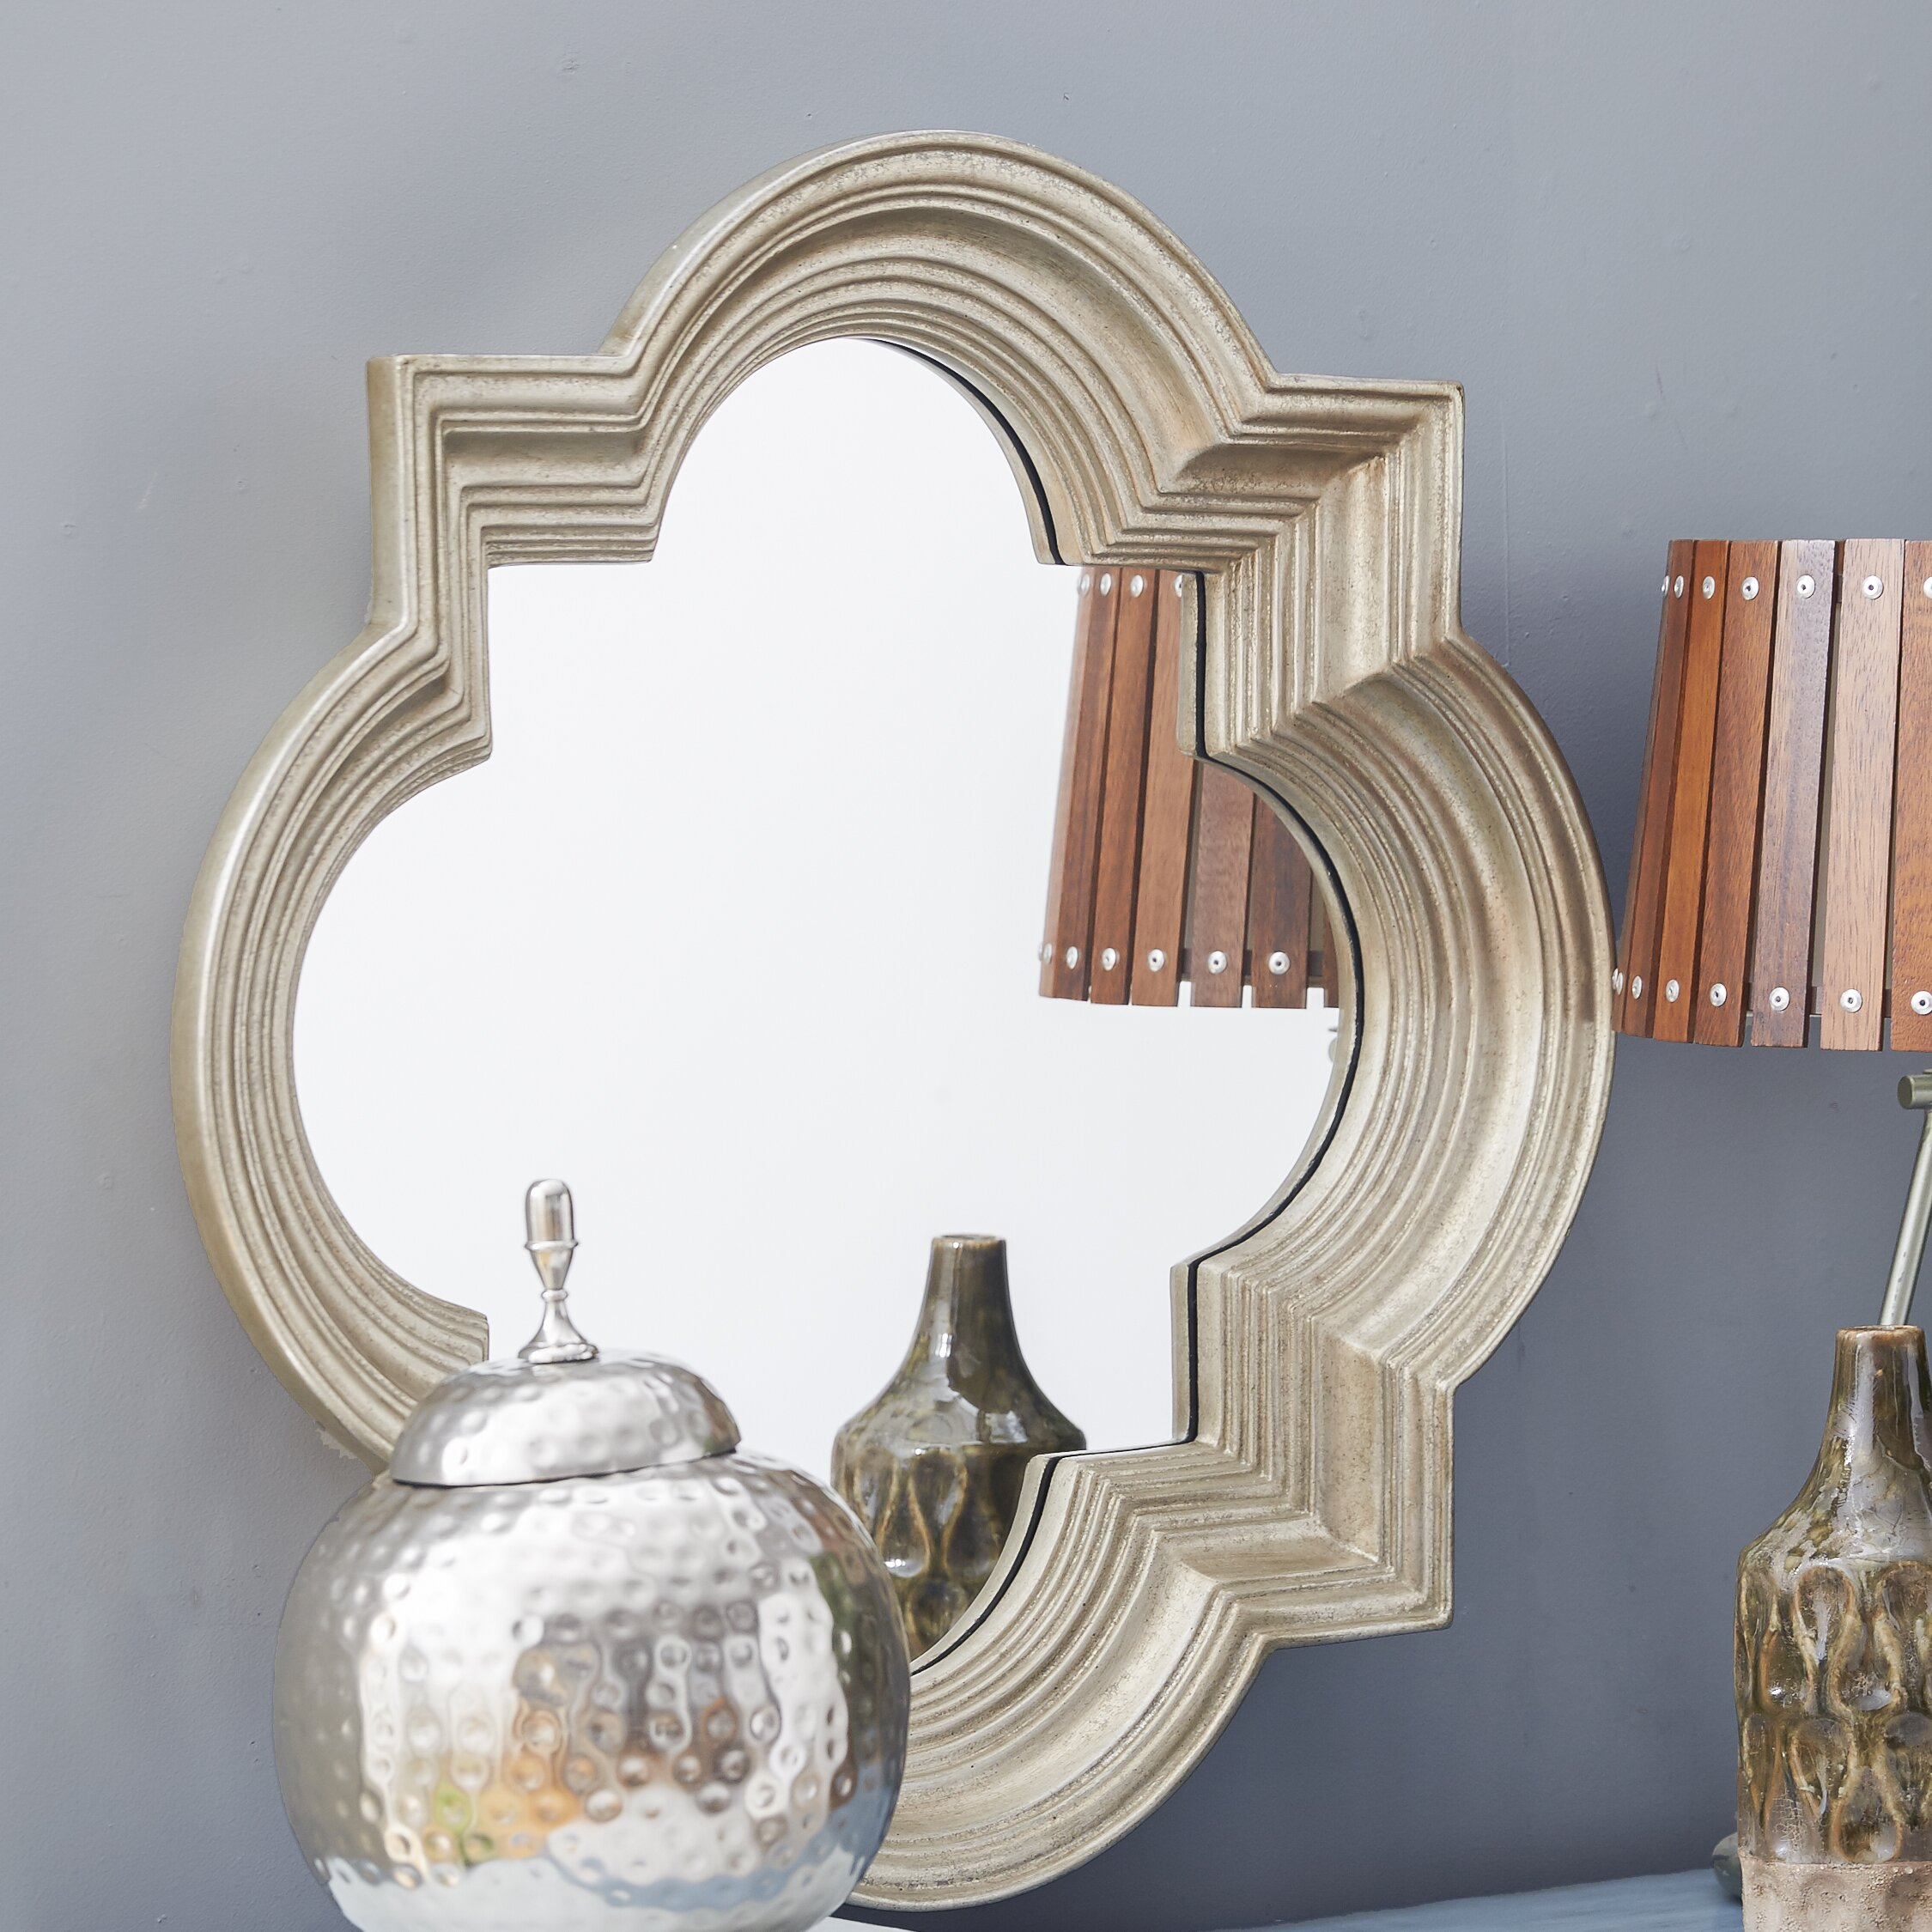 Osp designs gatsby decorative beveled wall mirror for Miroirs decoratif